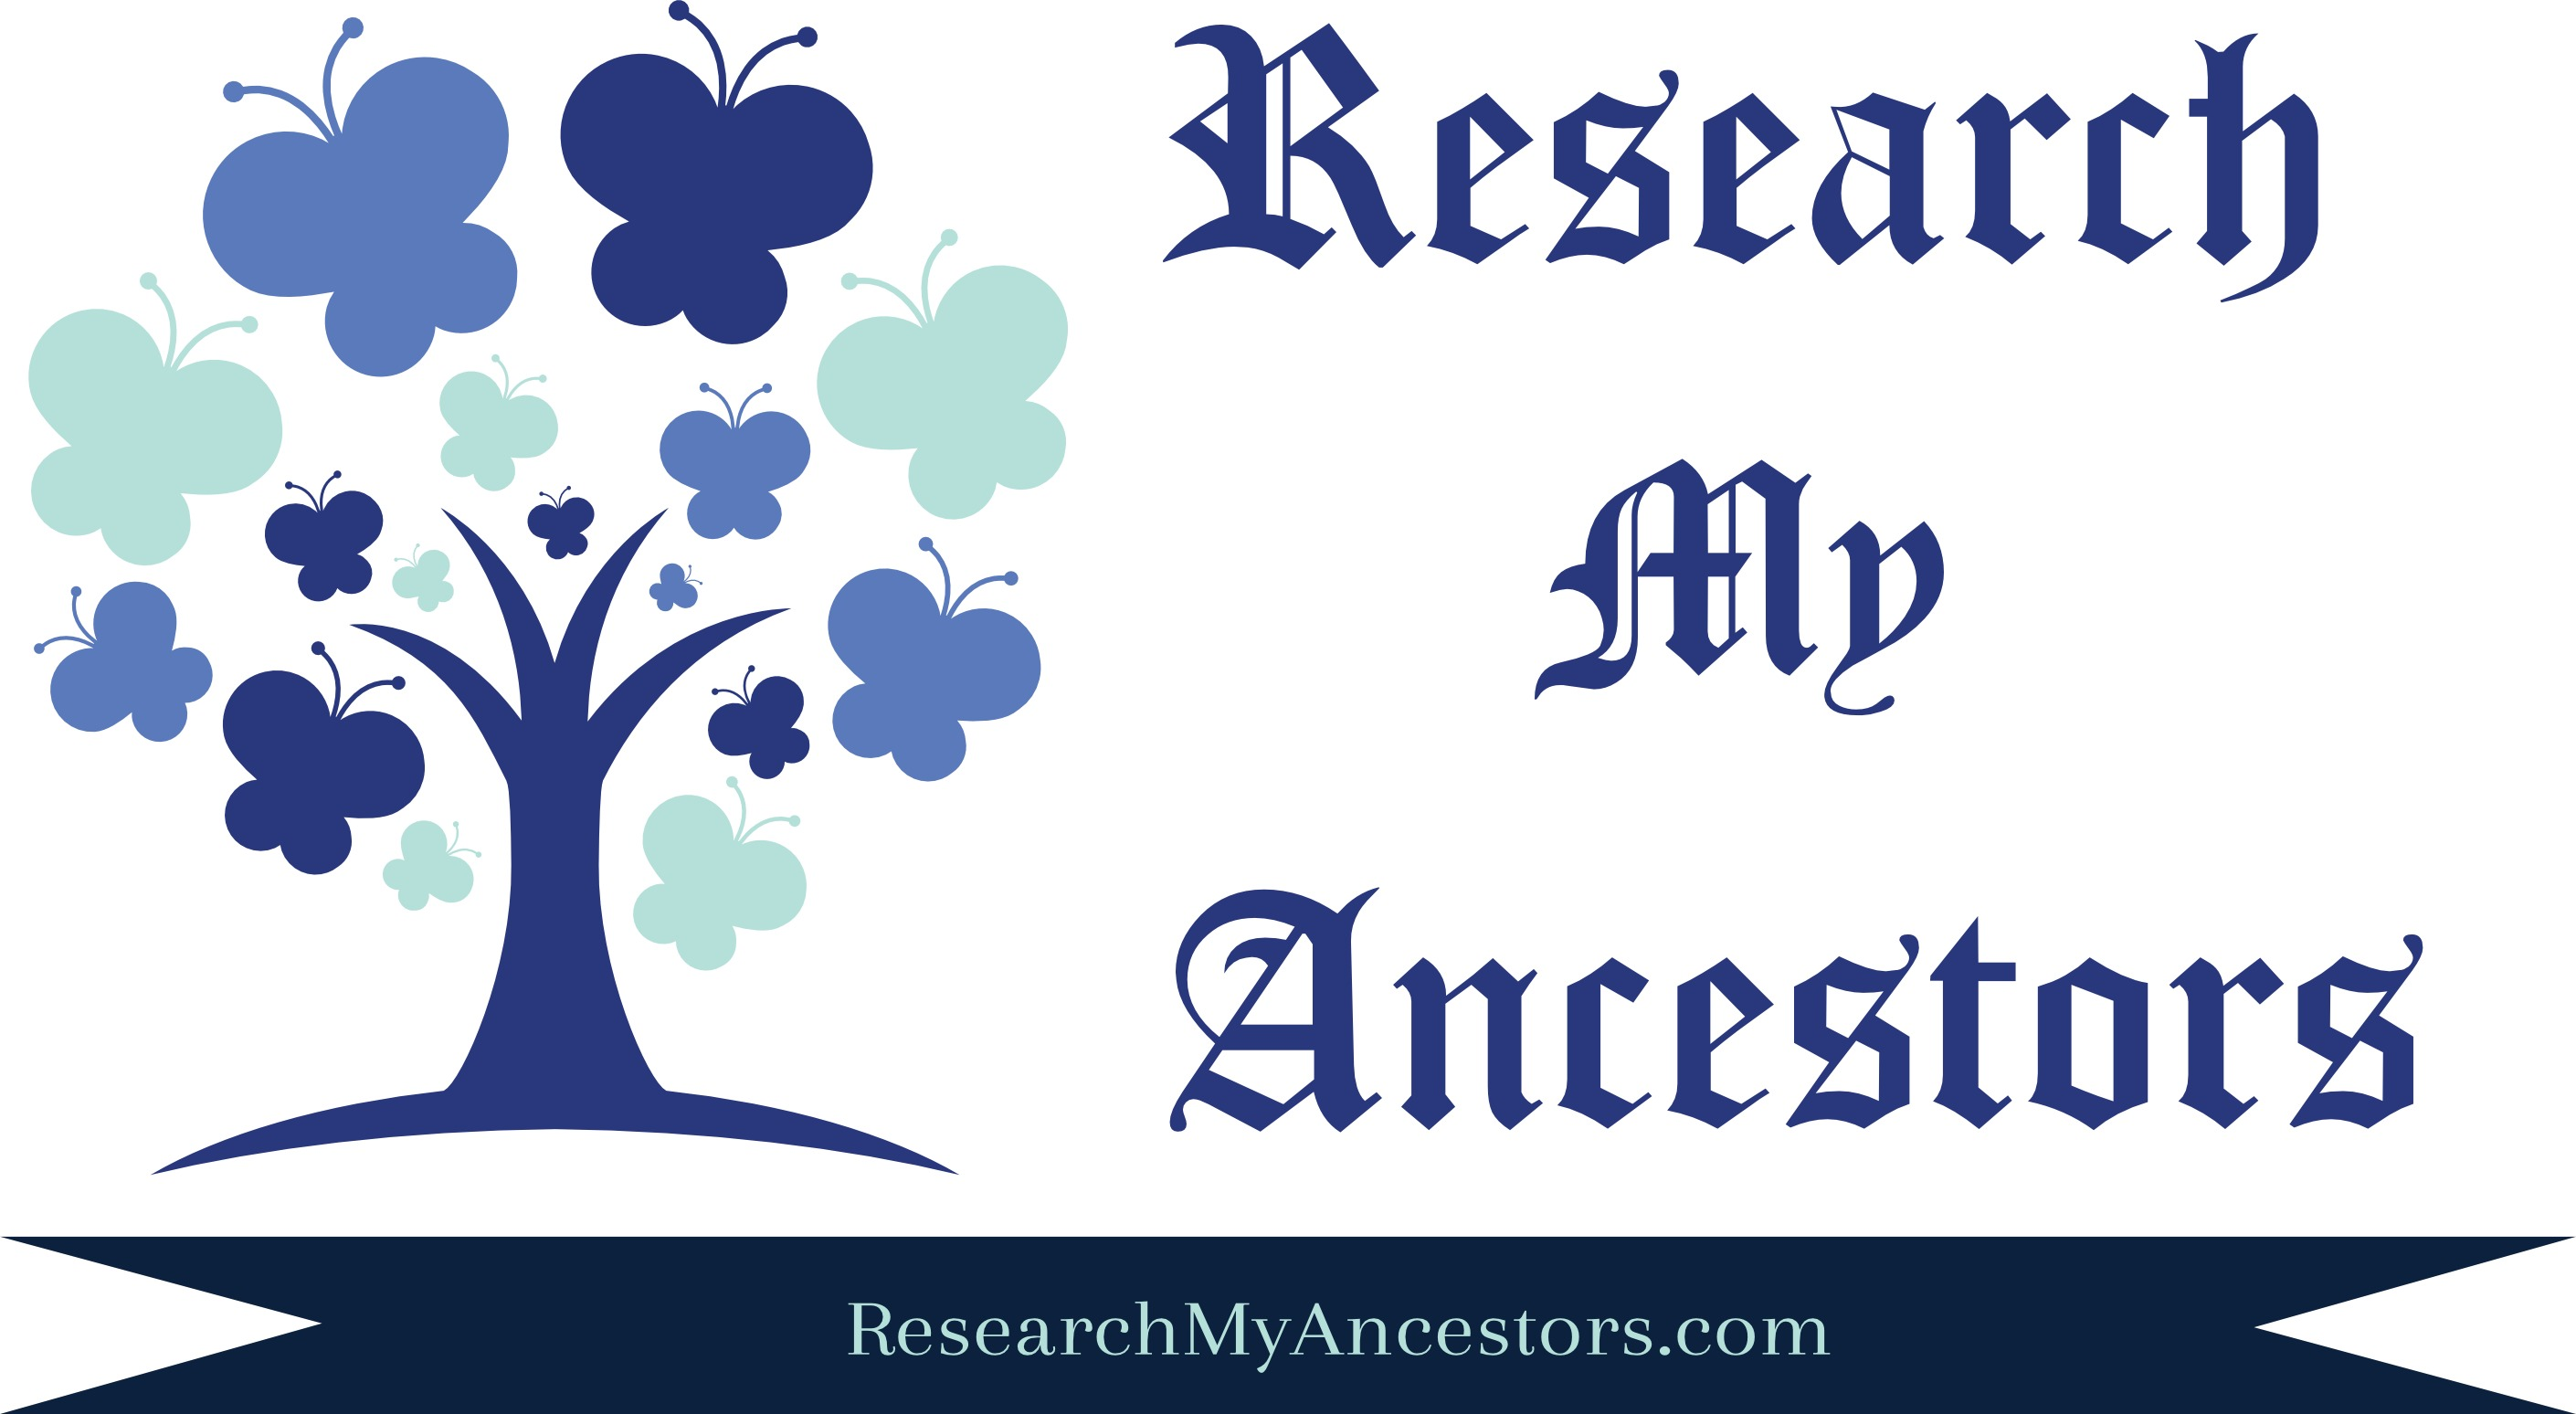 Research My Ancestors